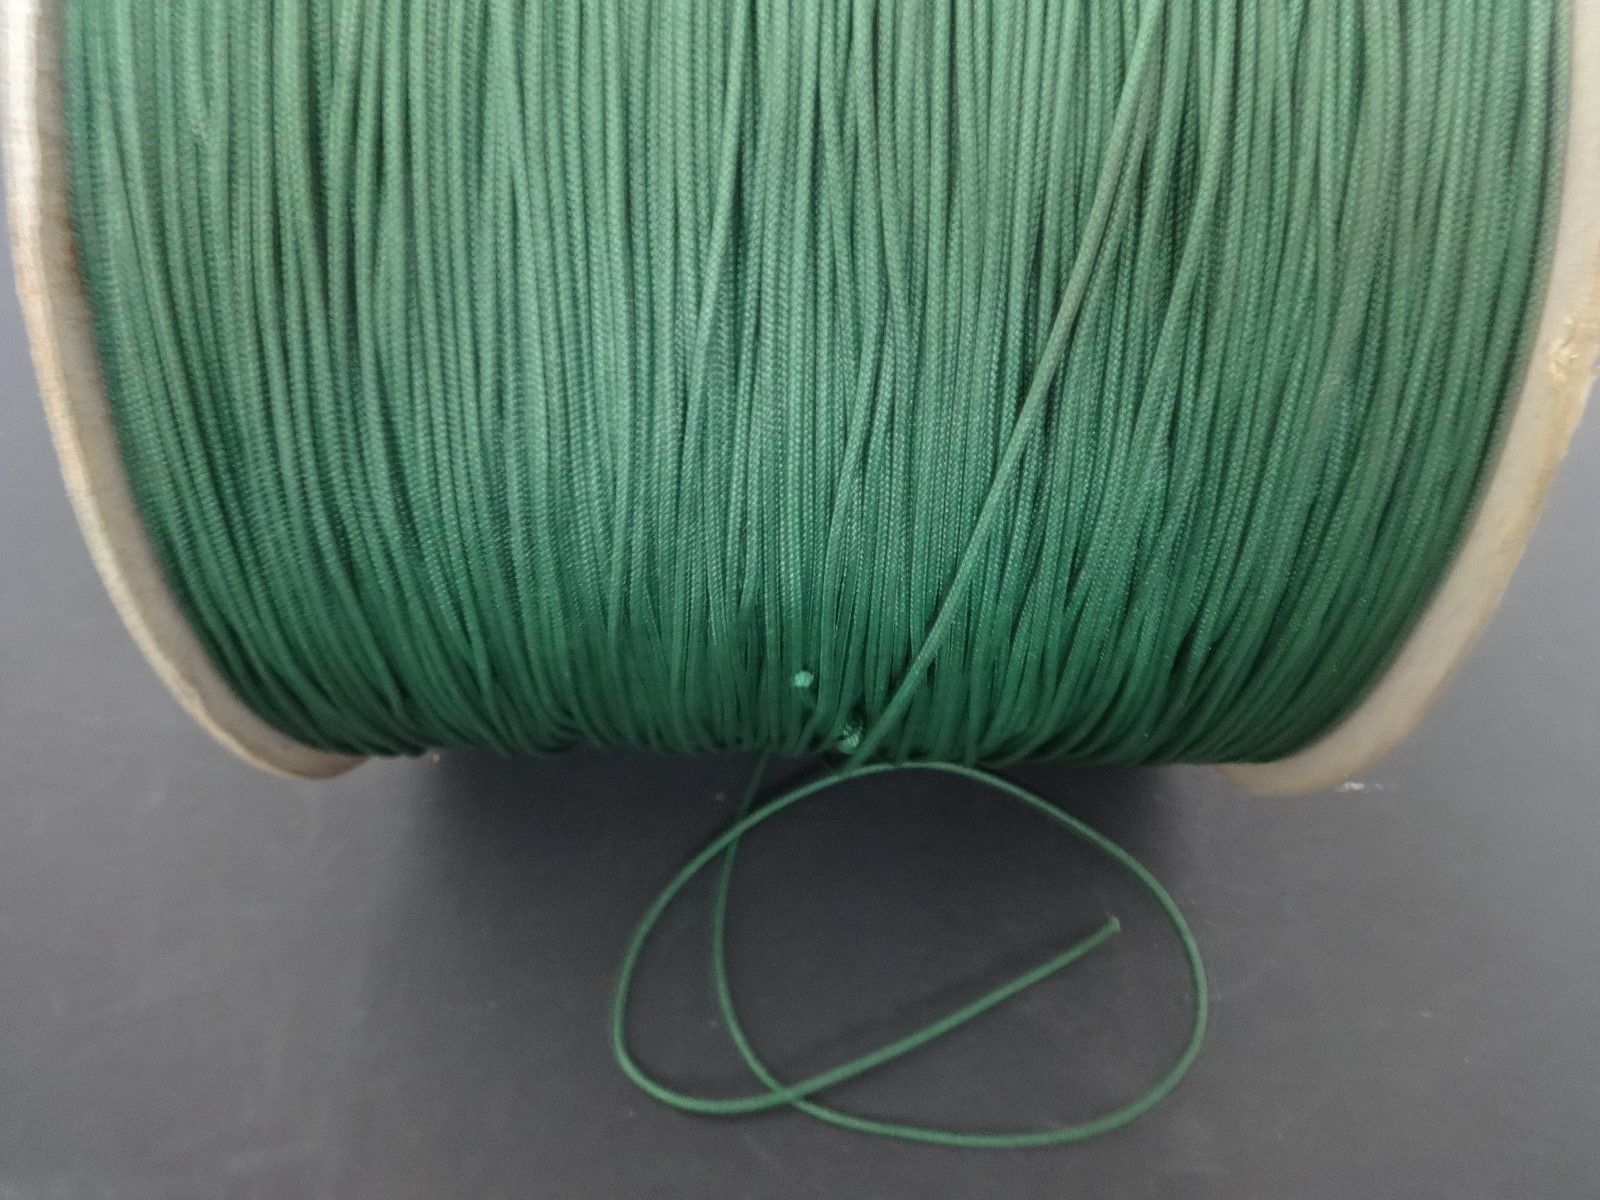 50 FEET:1.8mm Forest Green LIFT CORD for ROMAN/PLEATED shades, blinds & craft